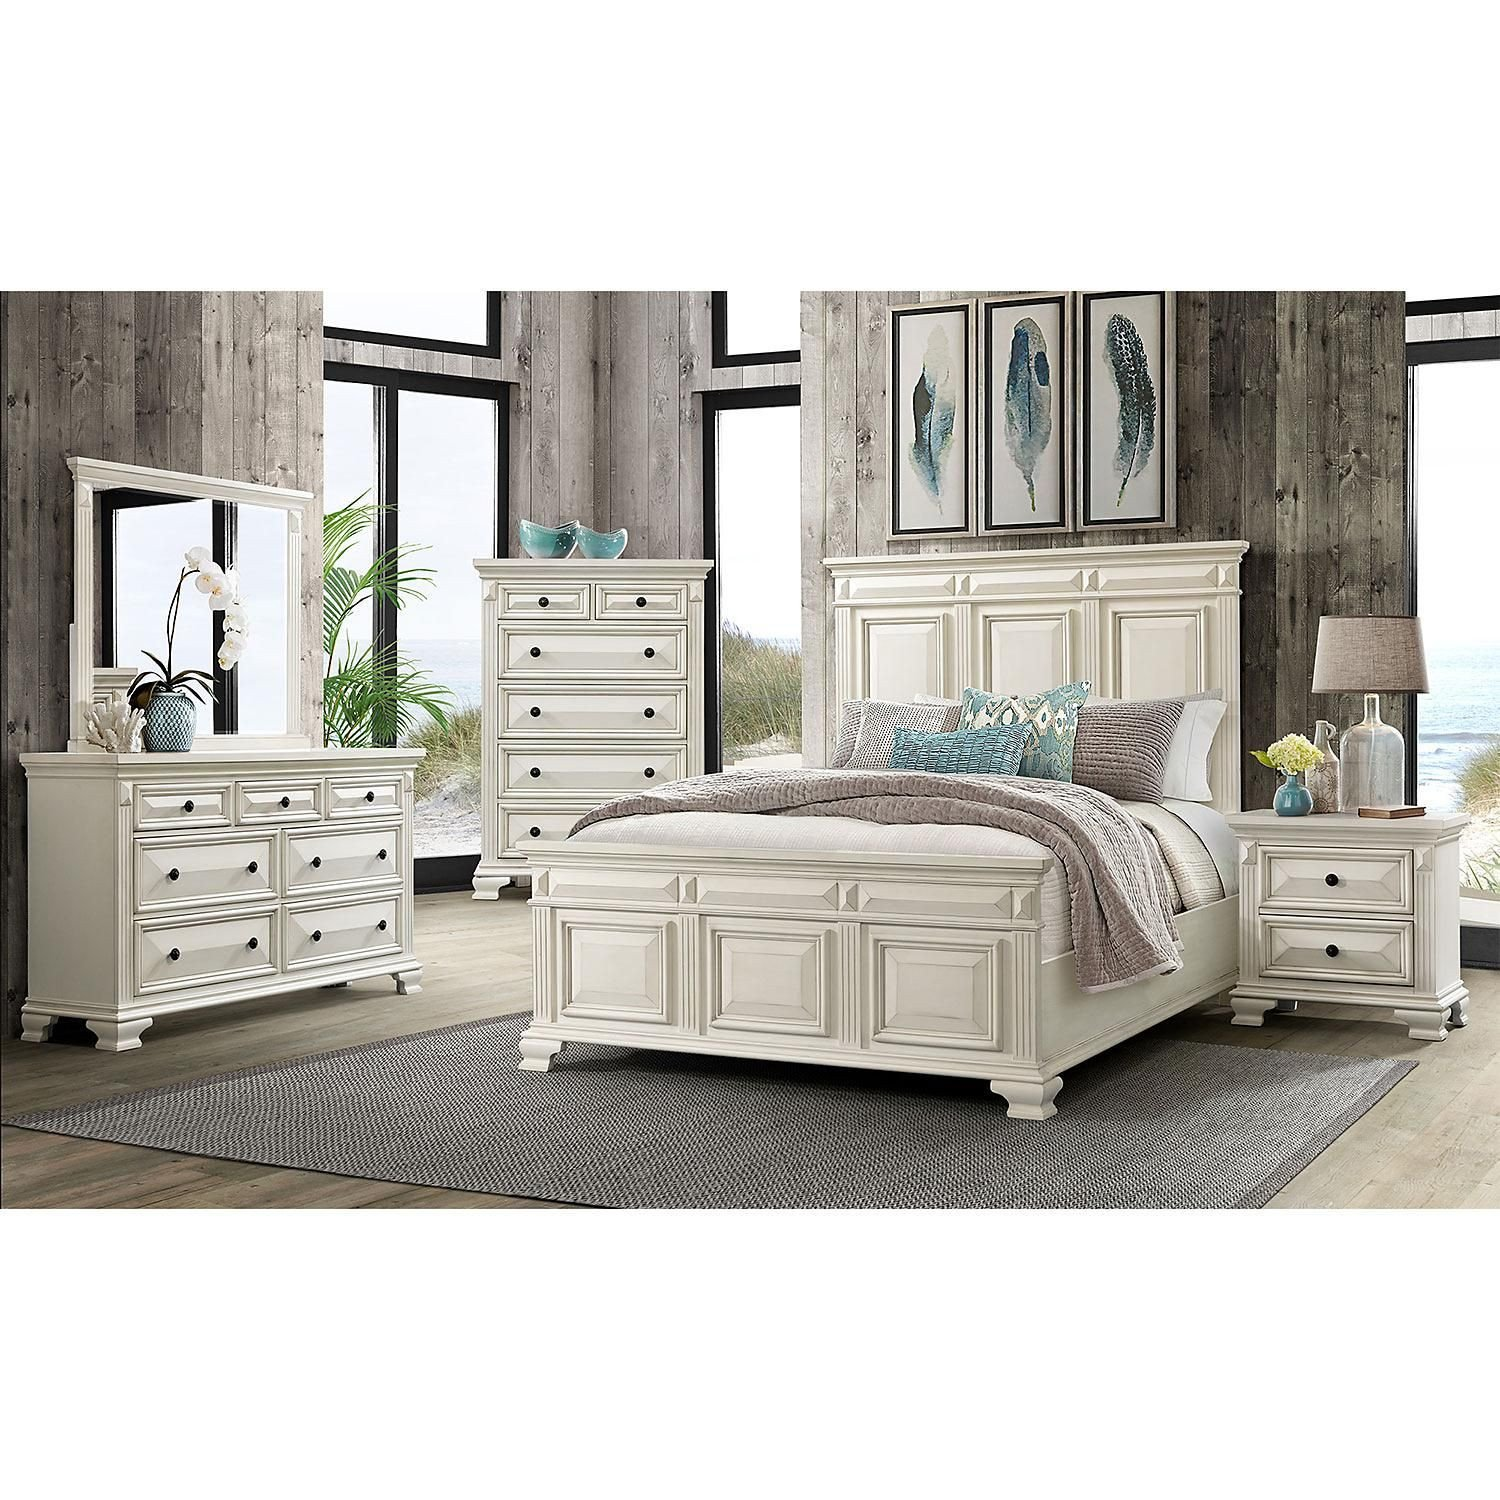 Value City Bedroom Set On Sale Lovely $1599 00 society Den Trent Panel 6 Piece King Bedroom Set